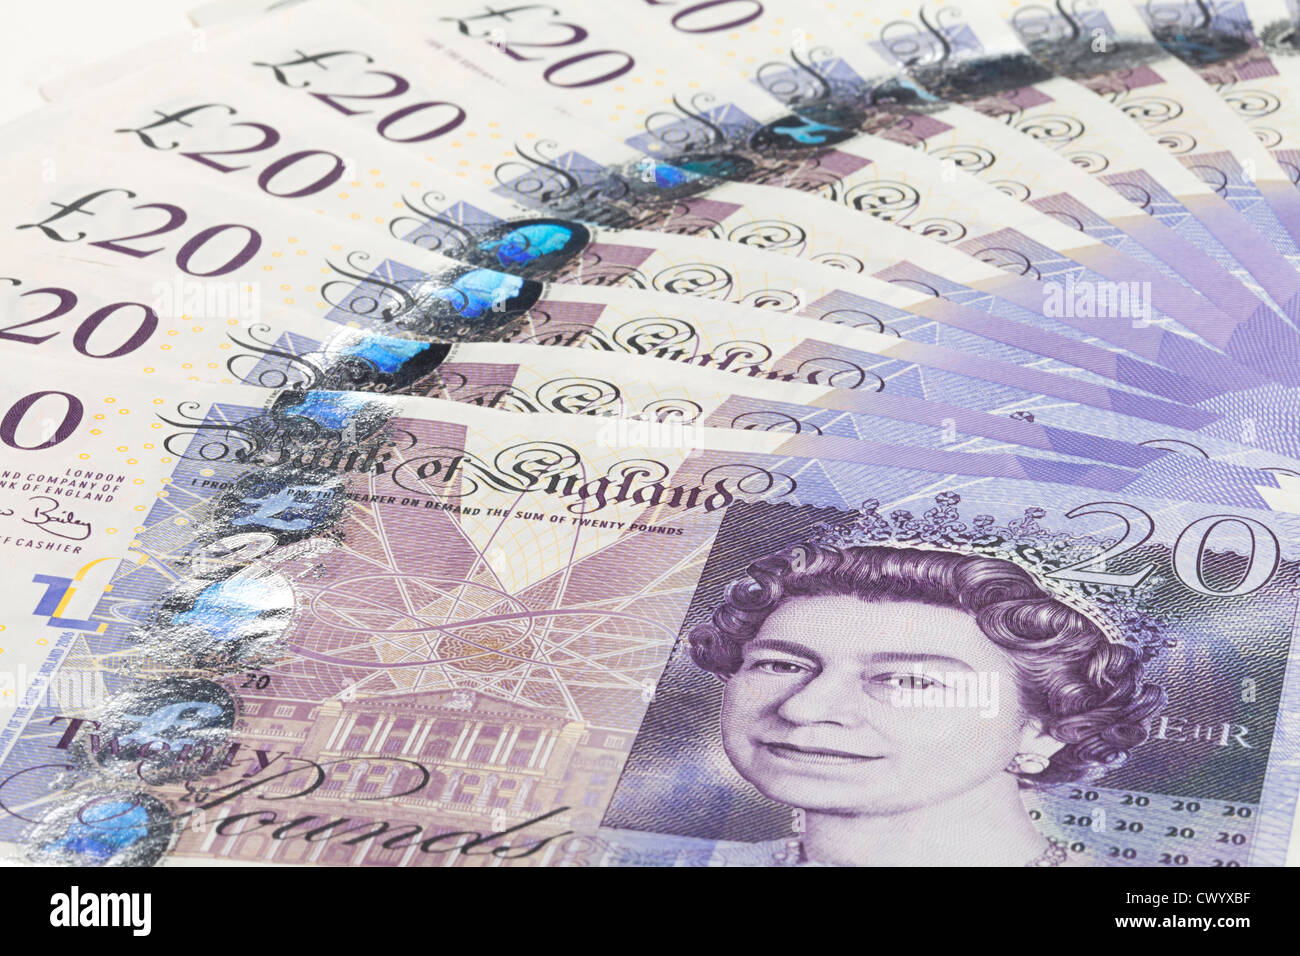 a fan of new unused mint english 20 pound notes - Stock Image